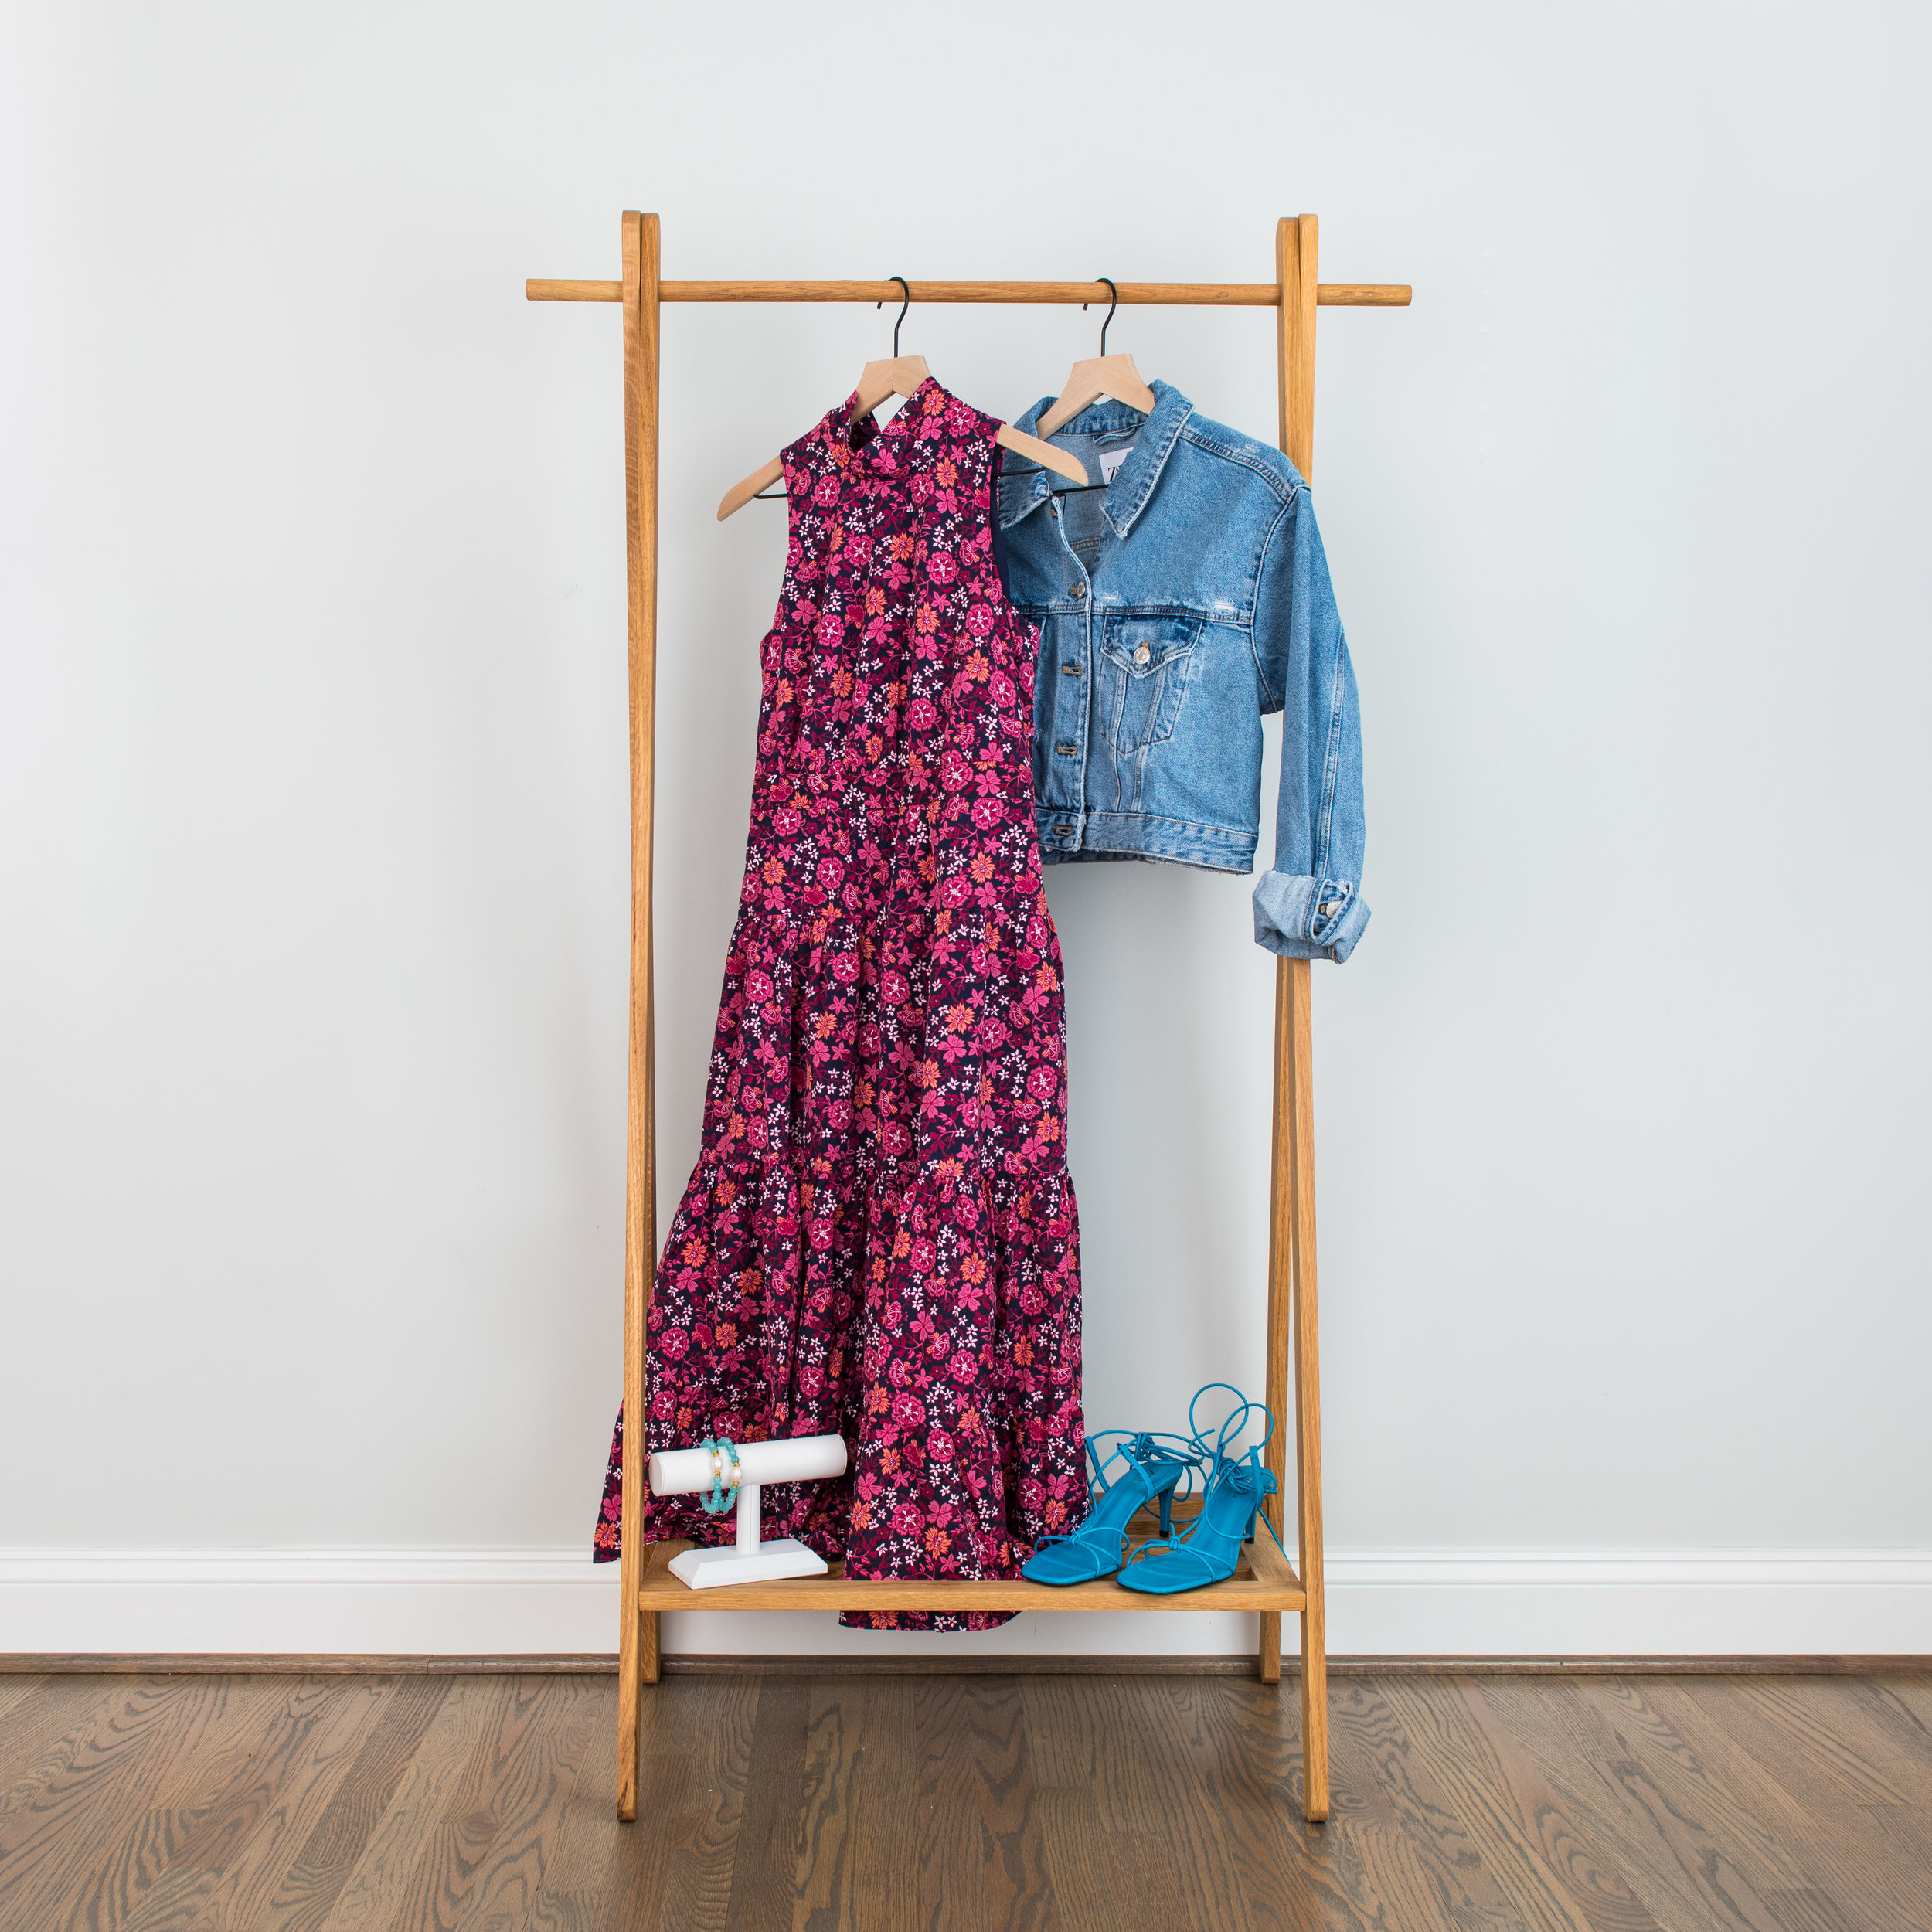 """Ruffle It Up - We all have those occasions where we need to be dressy but don't want to overdo it. A layered dress with colored, strappy sandals and a denim jacket can be your new """"go-to"""". Layer and un-layer this look to dress it up or down.Tiered/Ruffled Dress: 1 // 2 // 3Denim Jacket: 1 // 2 // 3Colored Strap Sandals: 1 // 2 // 3Stacked Bracelets: 1 // 2 // 3"""